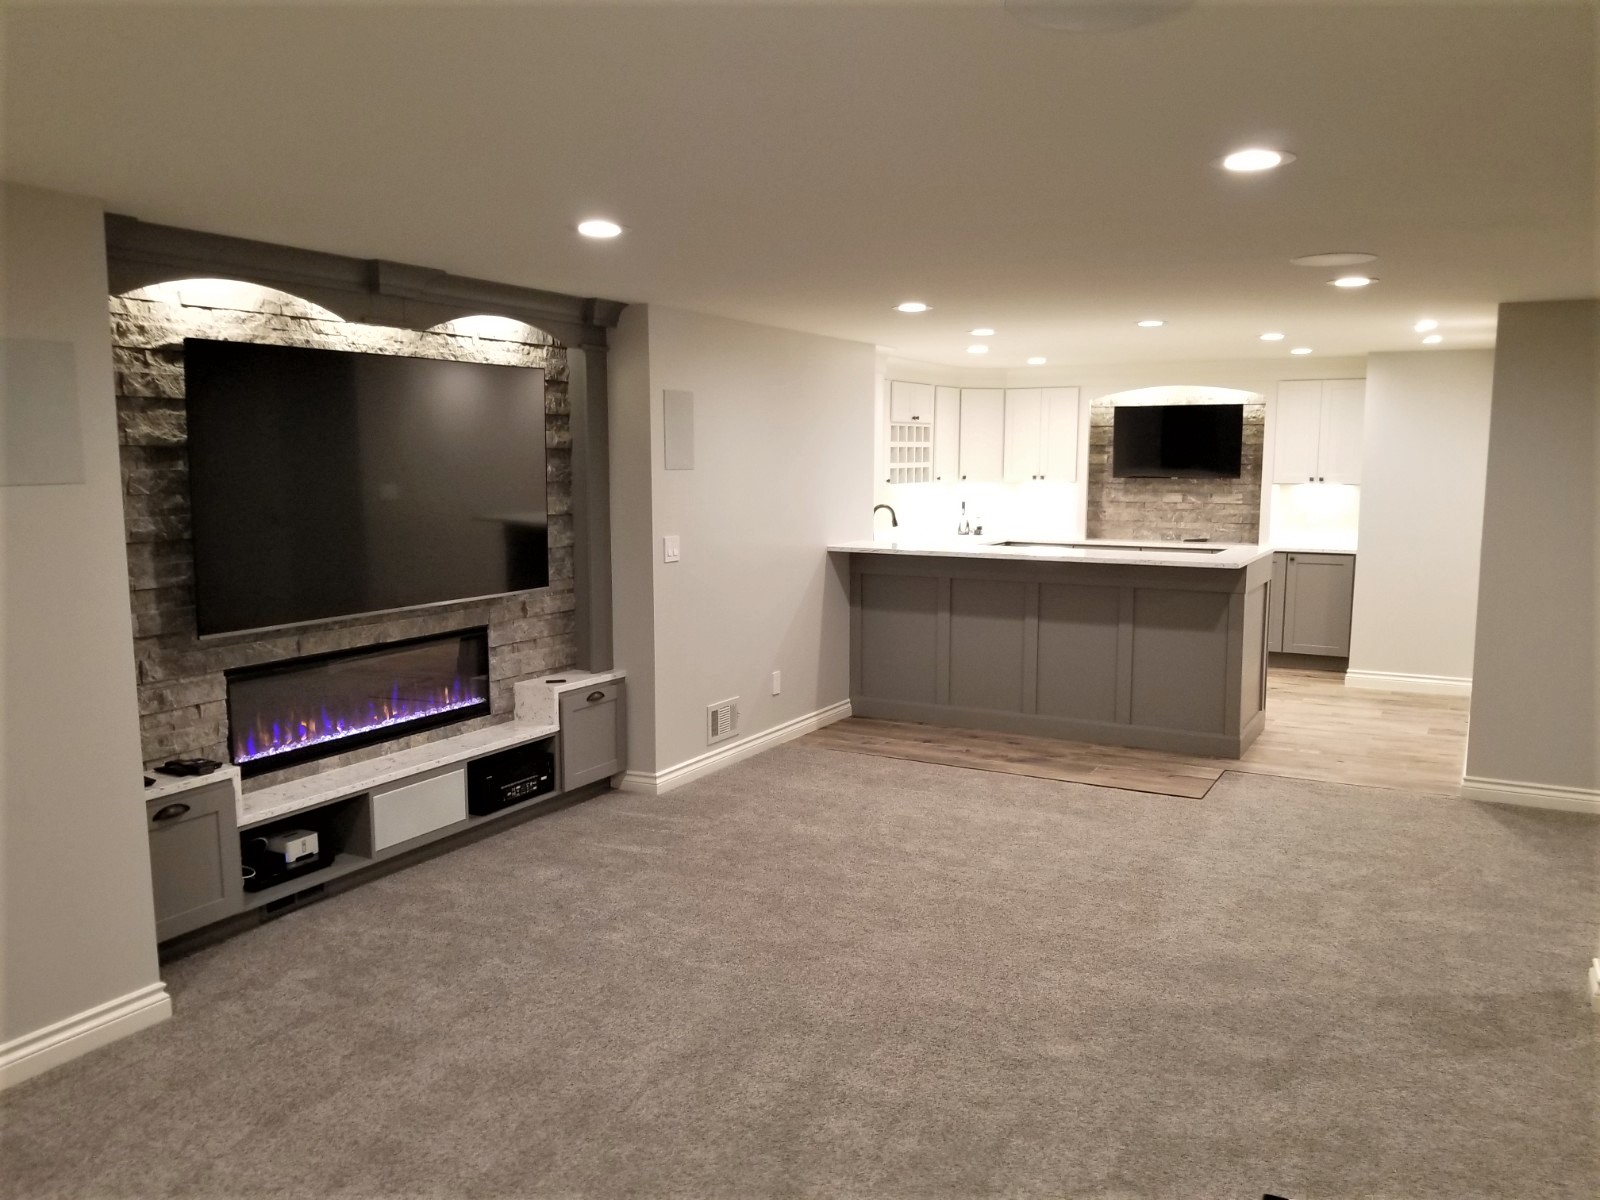 BASEMENT Design - Custom designs are developed to create a basement that suits your budget, style, & functionality needs.